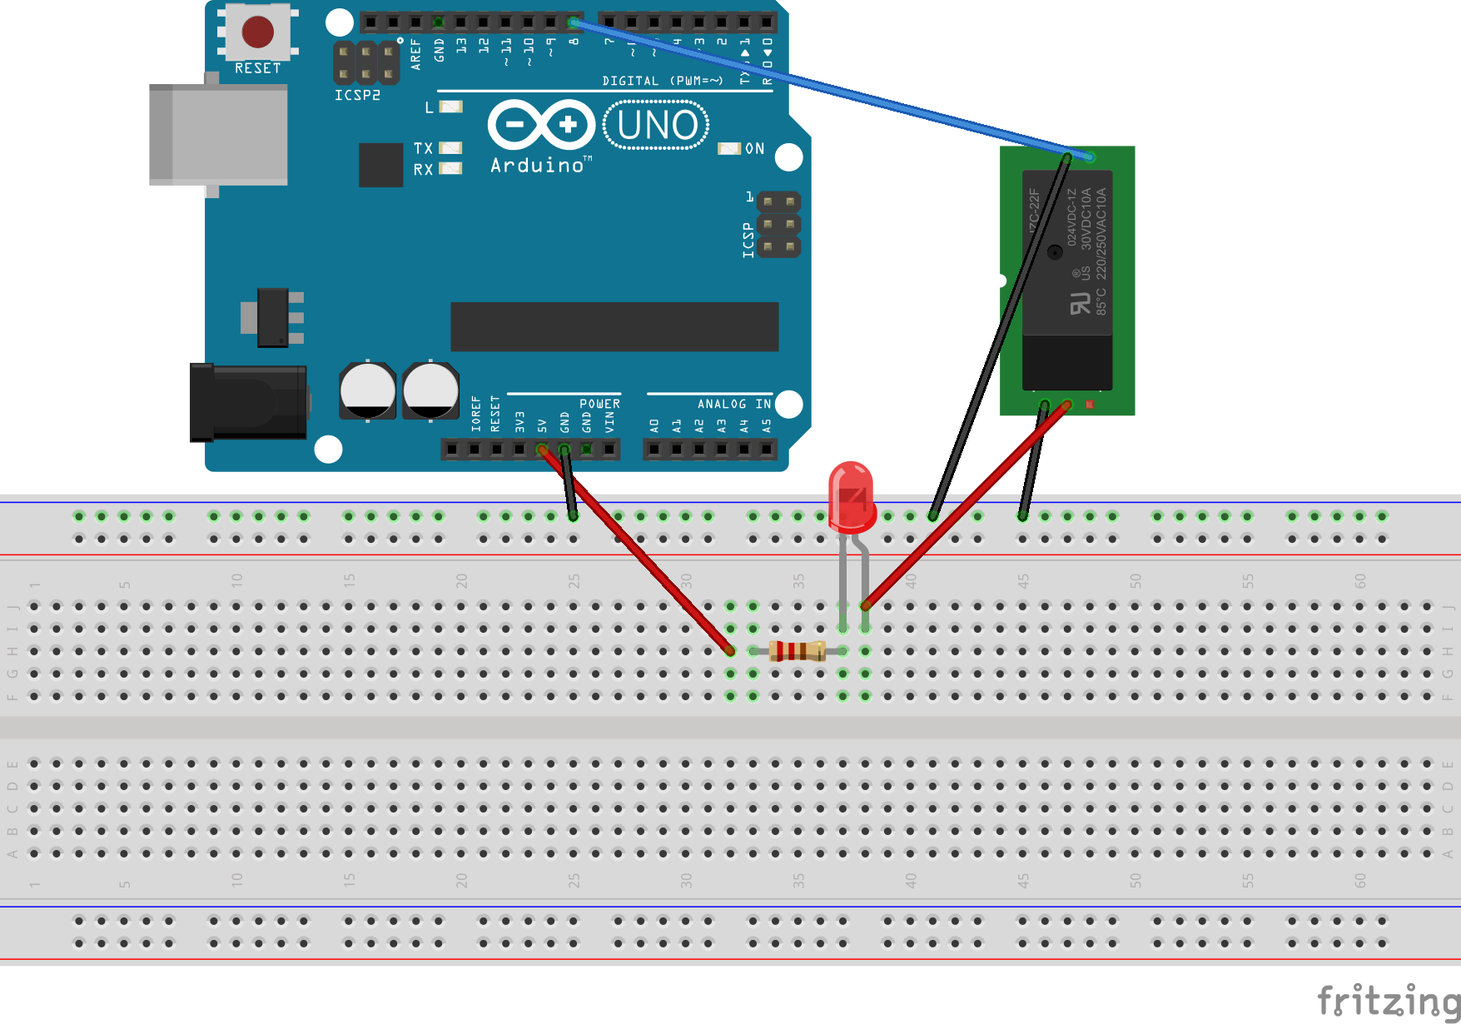 Testing the Relay Circuit